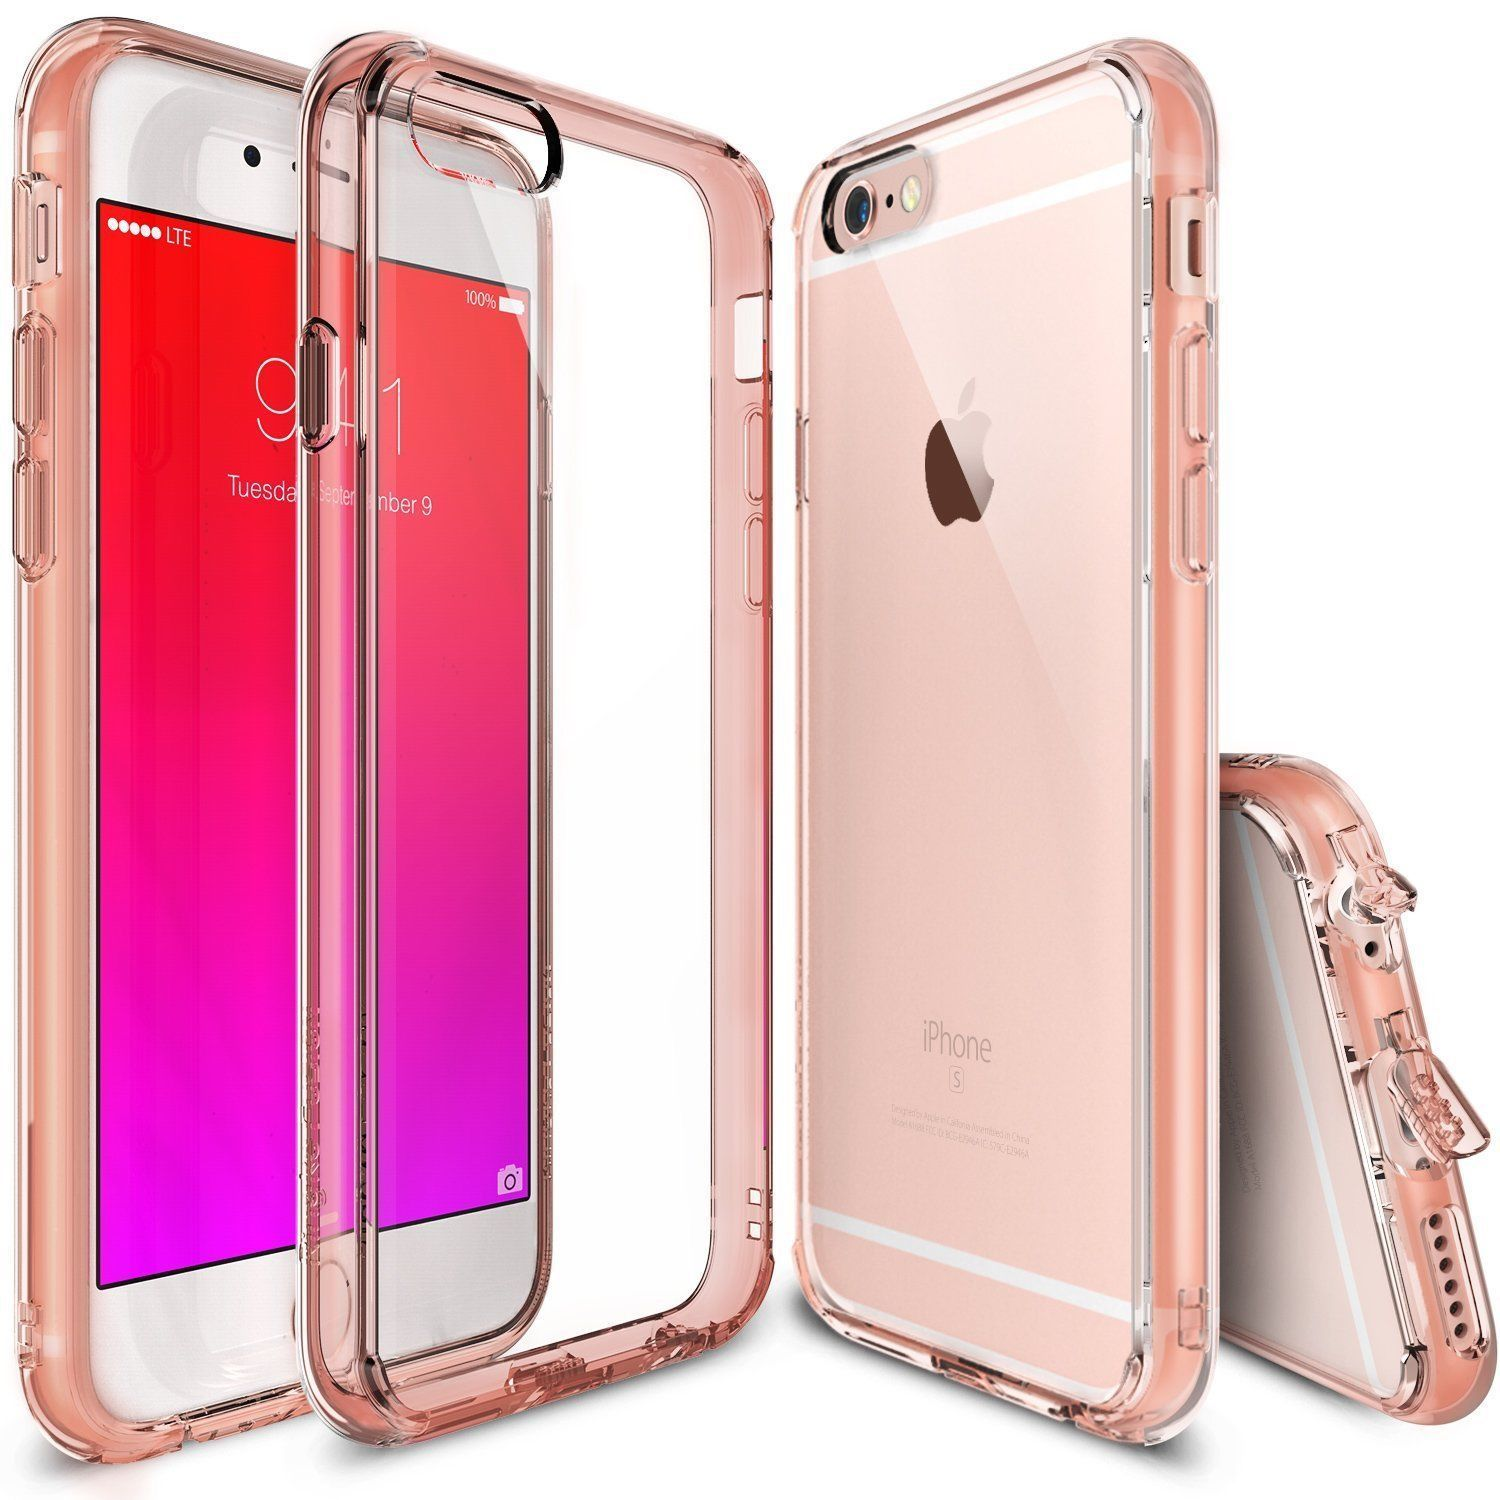 size 40 b3759 104b9 For iPhone 6 / 6S Plus | Ringke [FUSION] Clear Shockproof Protective ...